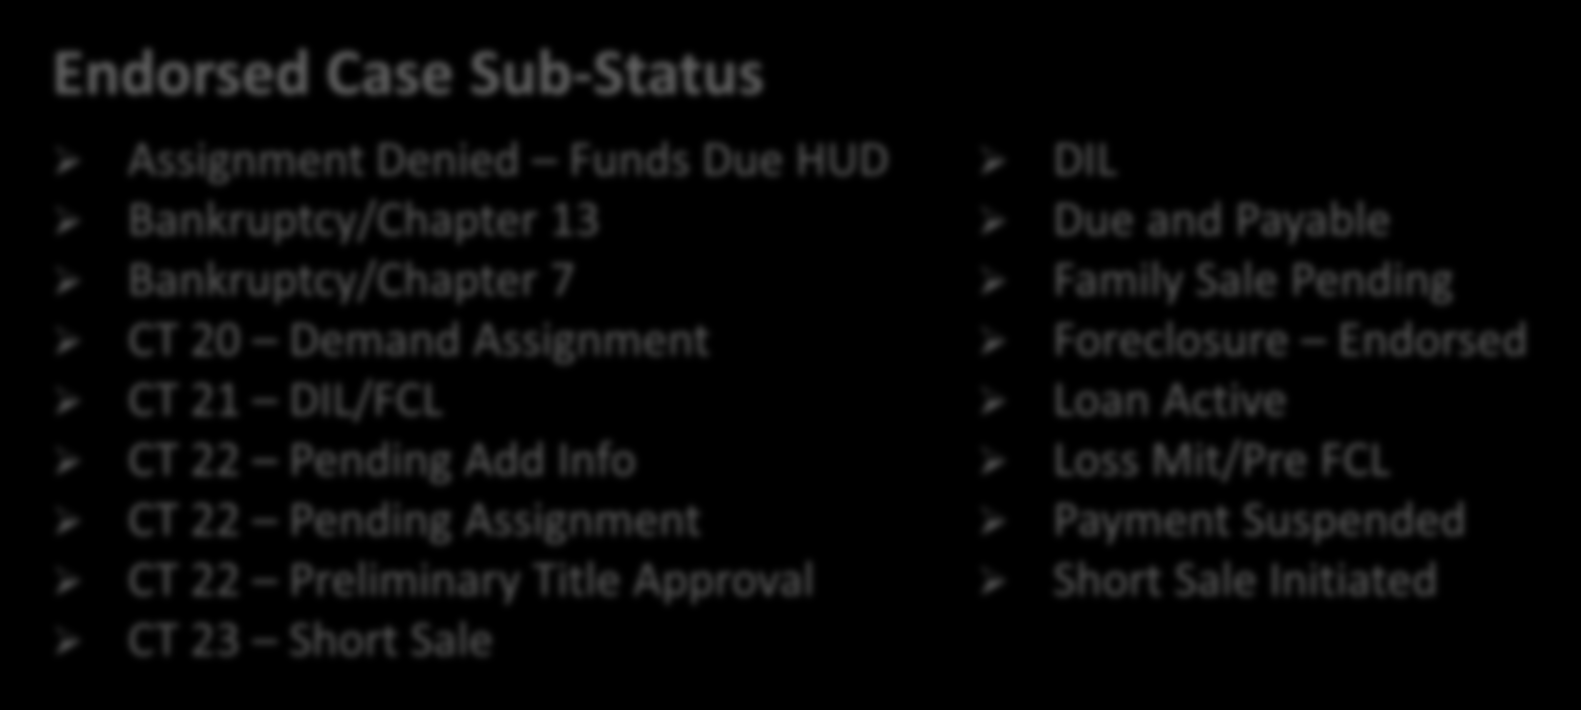 HECM Case Sub-Statuses Loans start with a Case Sub-Status of Loan Active.